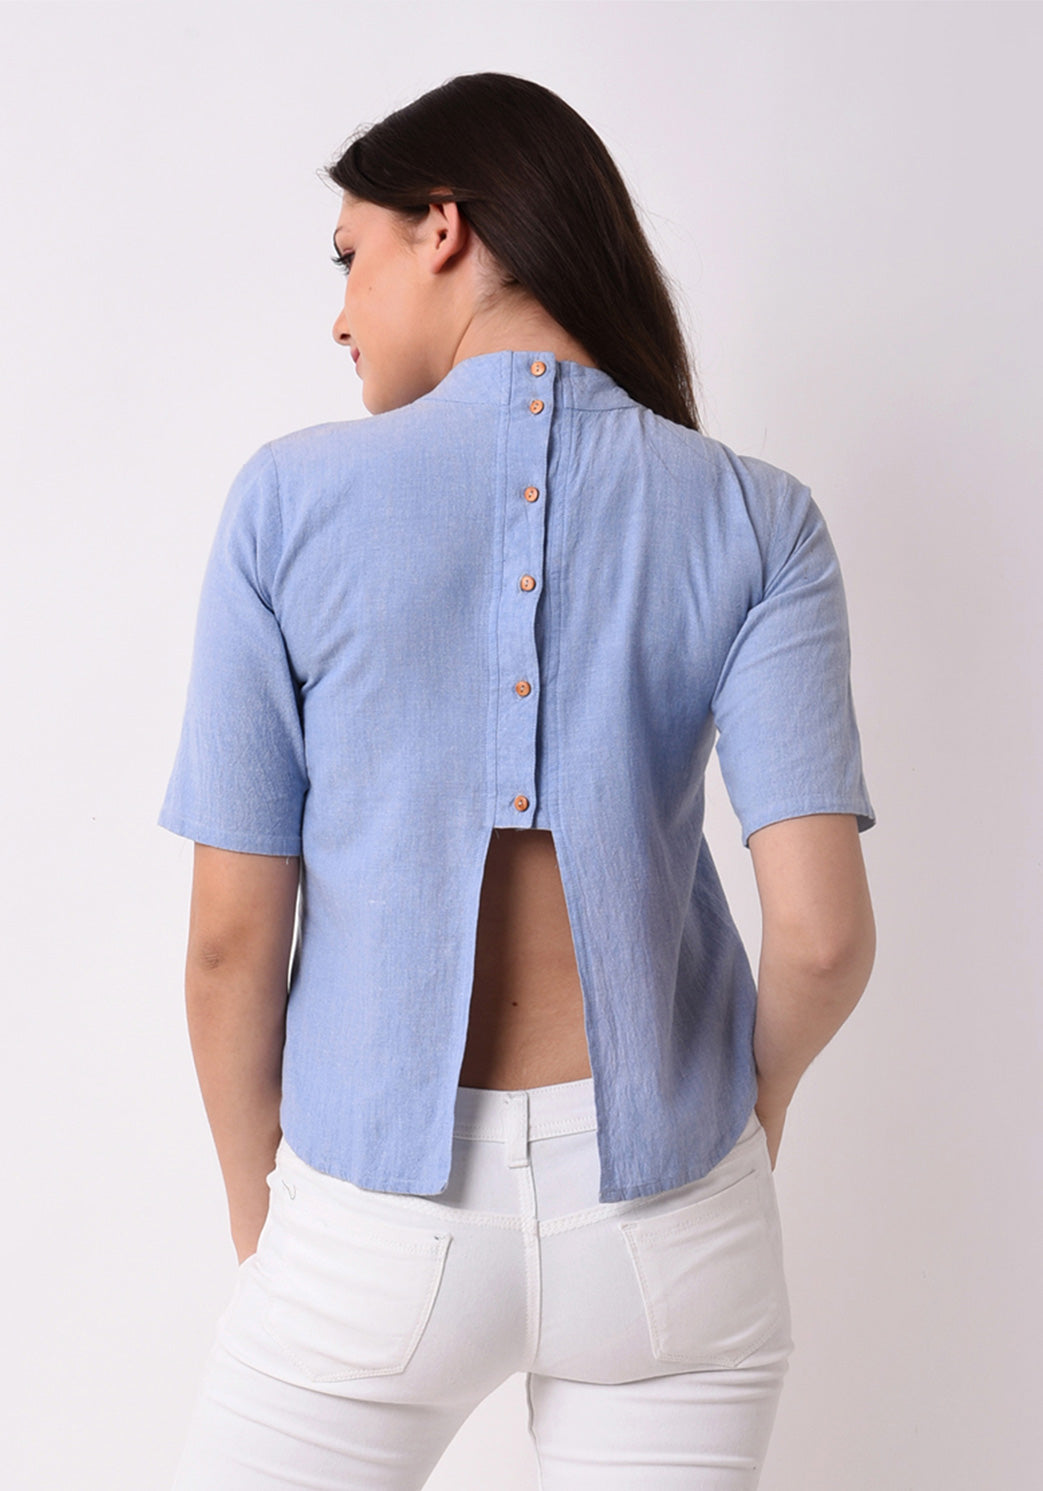 Chambray Embroidered Top - Wan Blue